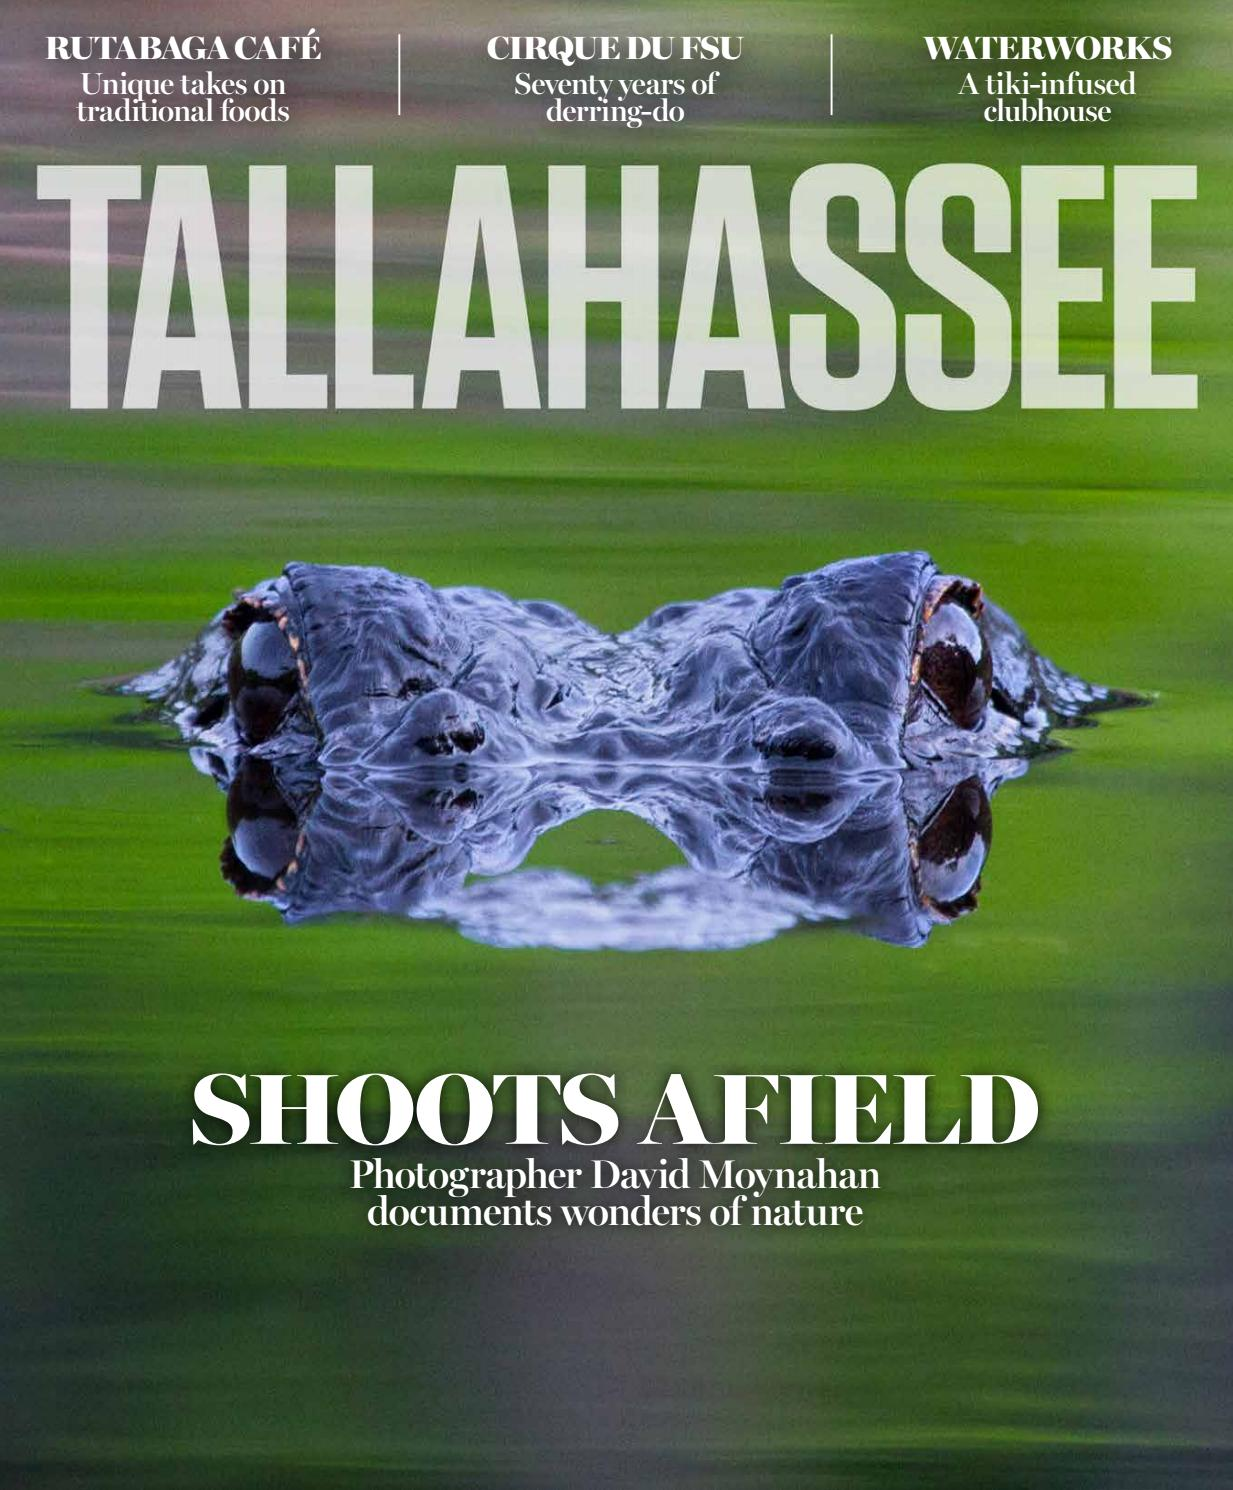 Tallahassee Magazine - September/October 2018 by Rowland Publishing, Inc. -  issuu